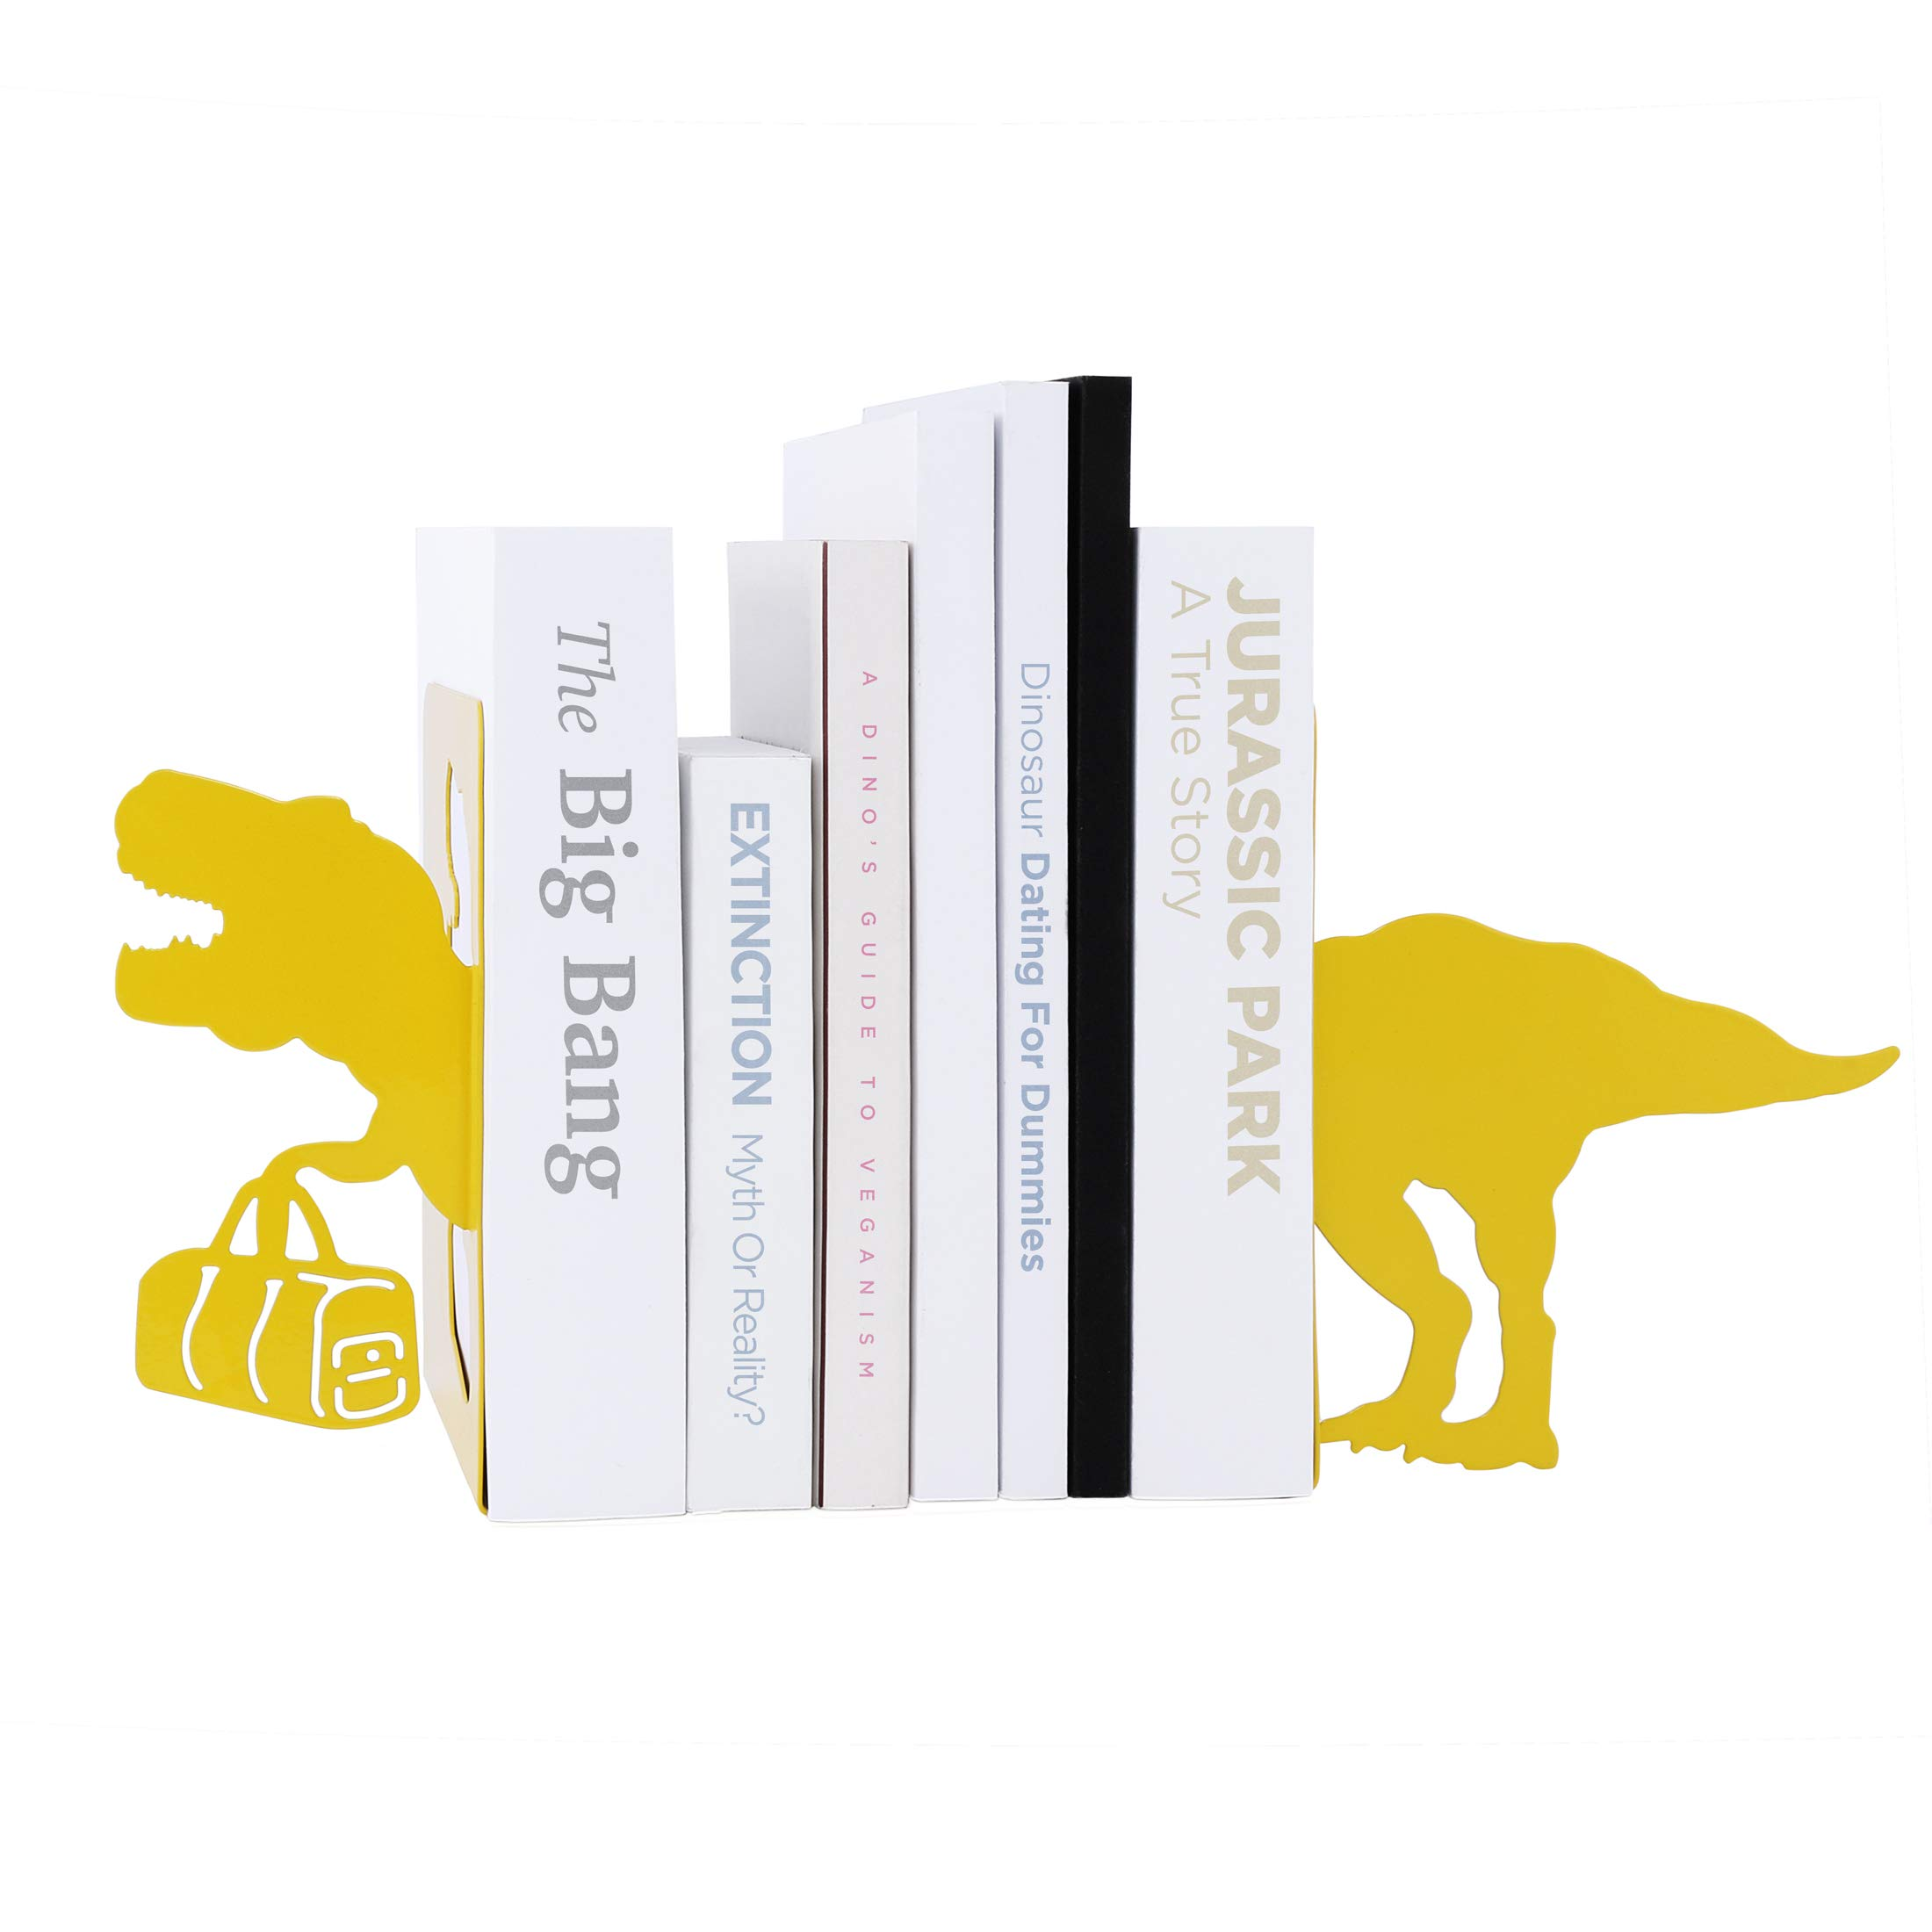 Mustard T-Rex Dinosaur Bookends by Mustard and Co.